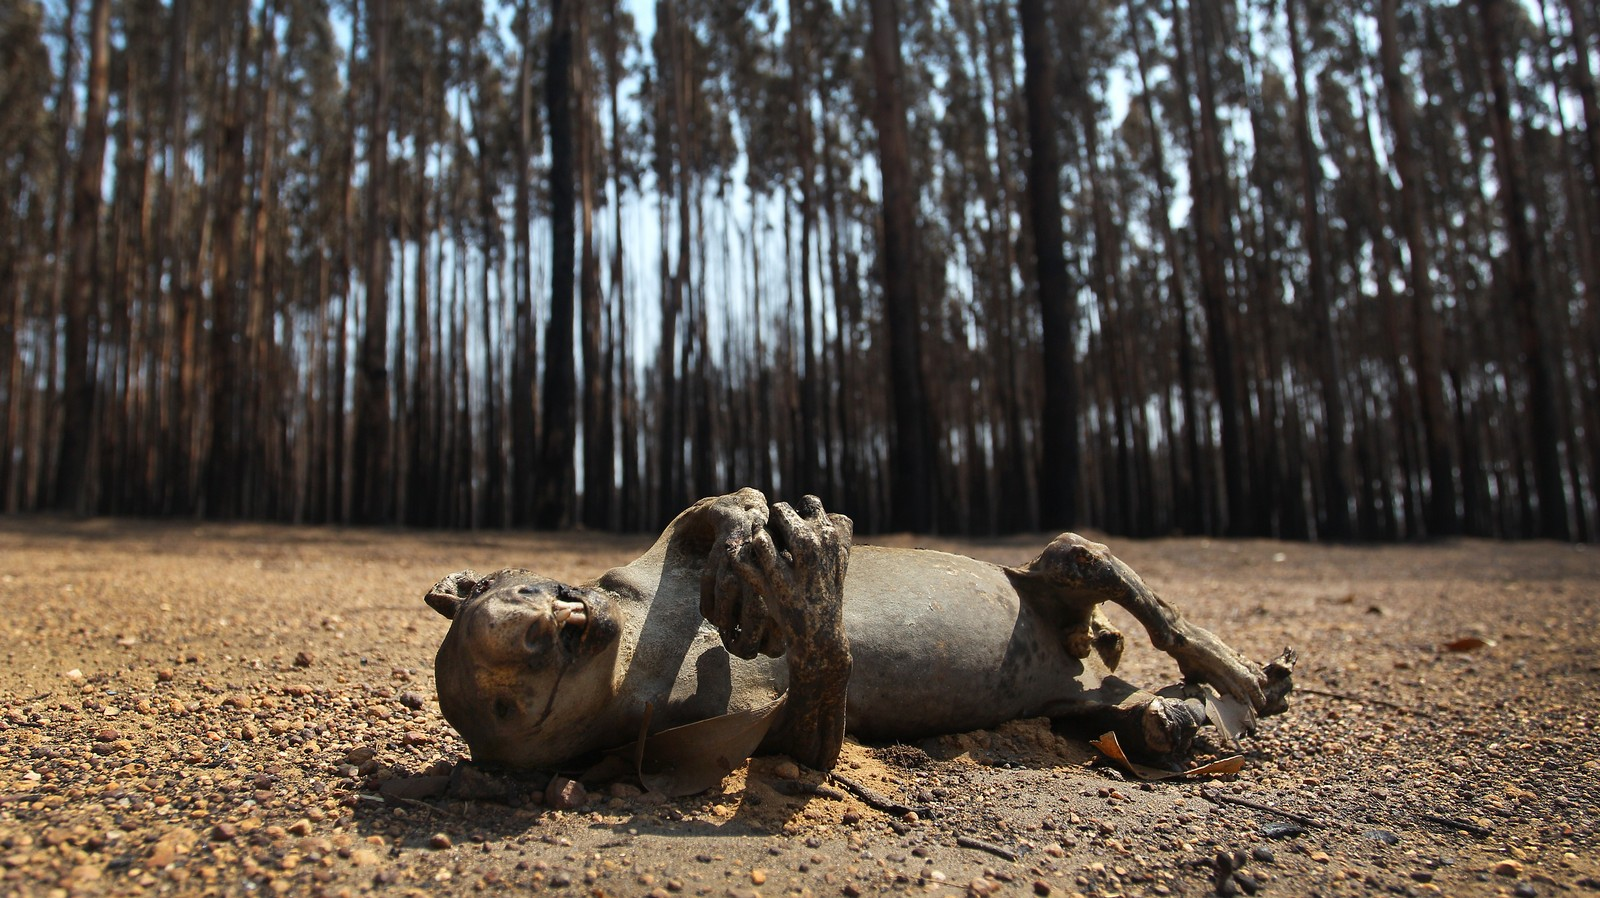 'Incomprehensible': The Australian Bushfires Are an Ecological Catastrophe